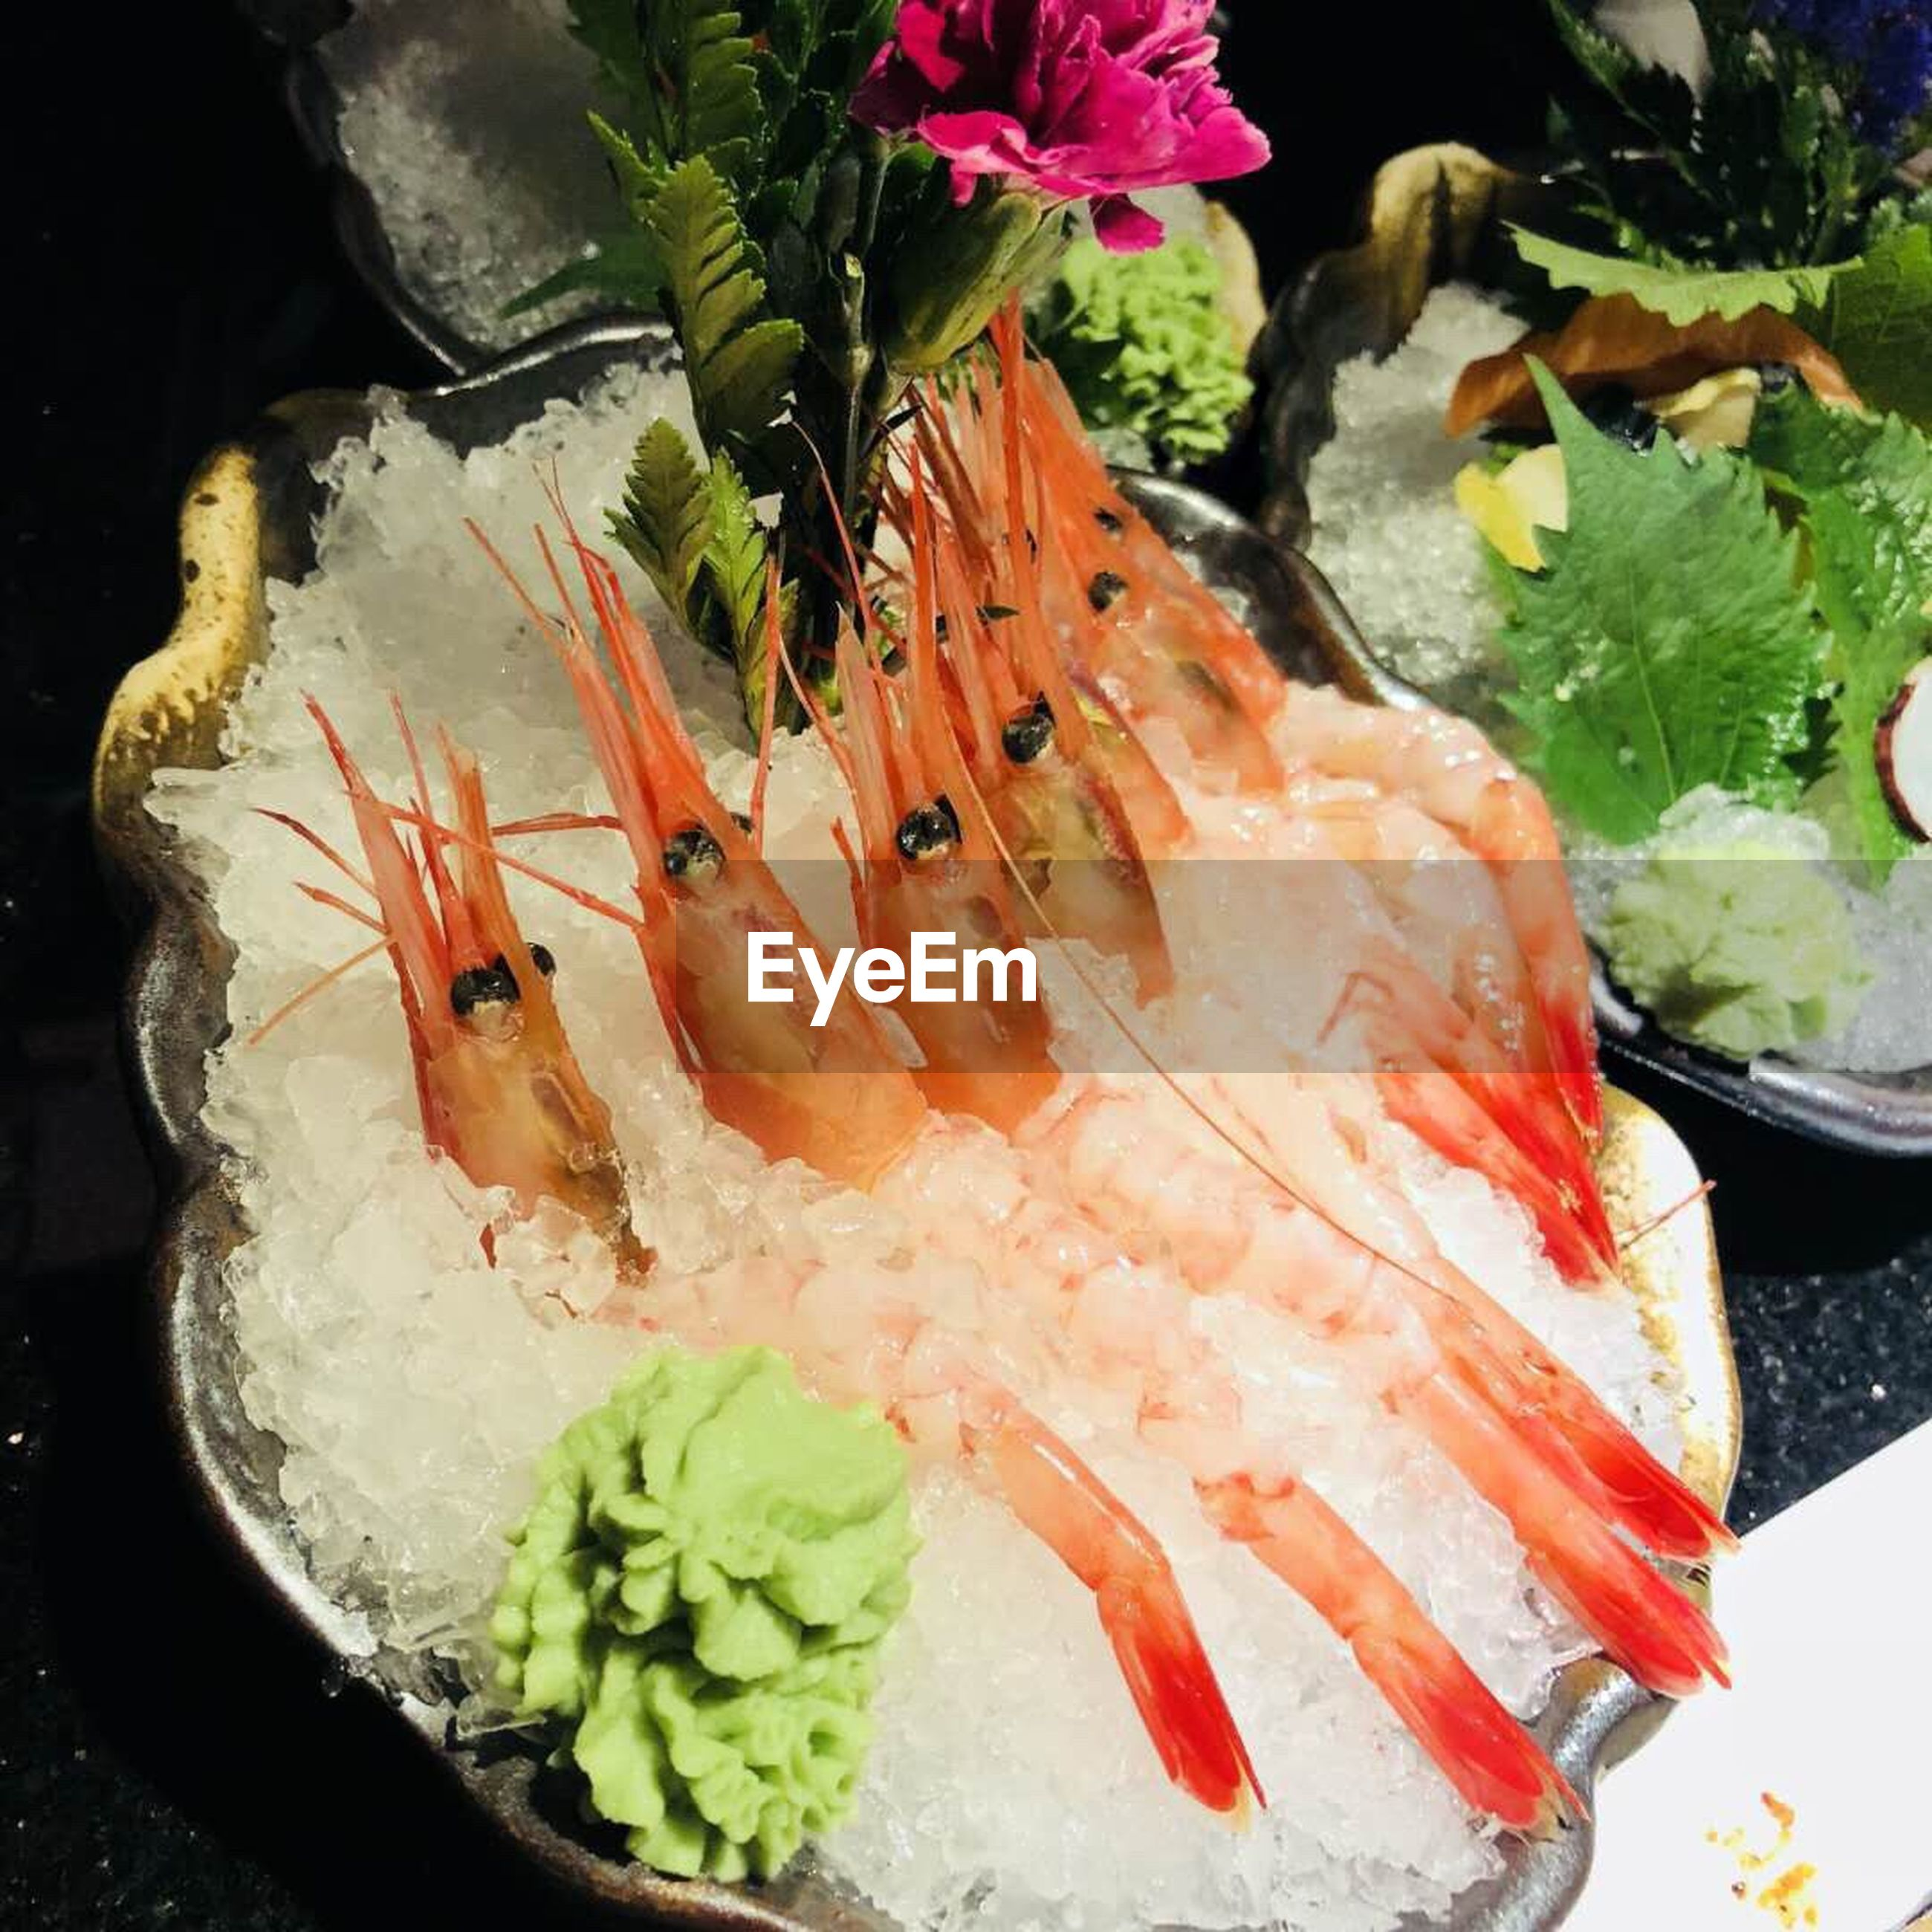 freshness, seafood, food, food and drink, wellbeing, close-up, fish, ready-to-eat, healthy eating, indoors, no people, japanese food, flower, flowering plant, animal, ice, still life, high angle view, plate, sashimi, dinner